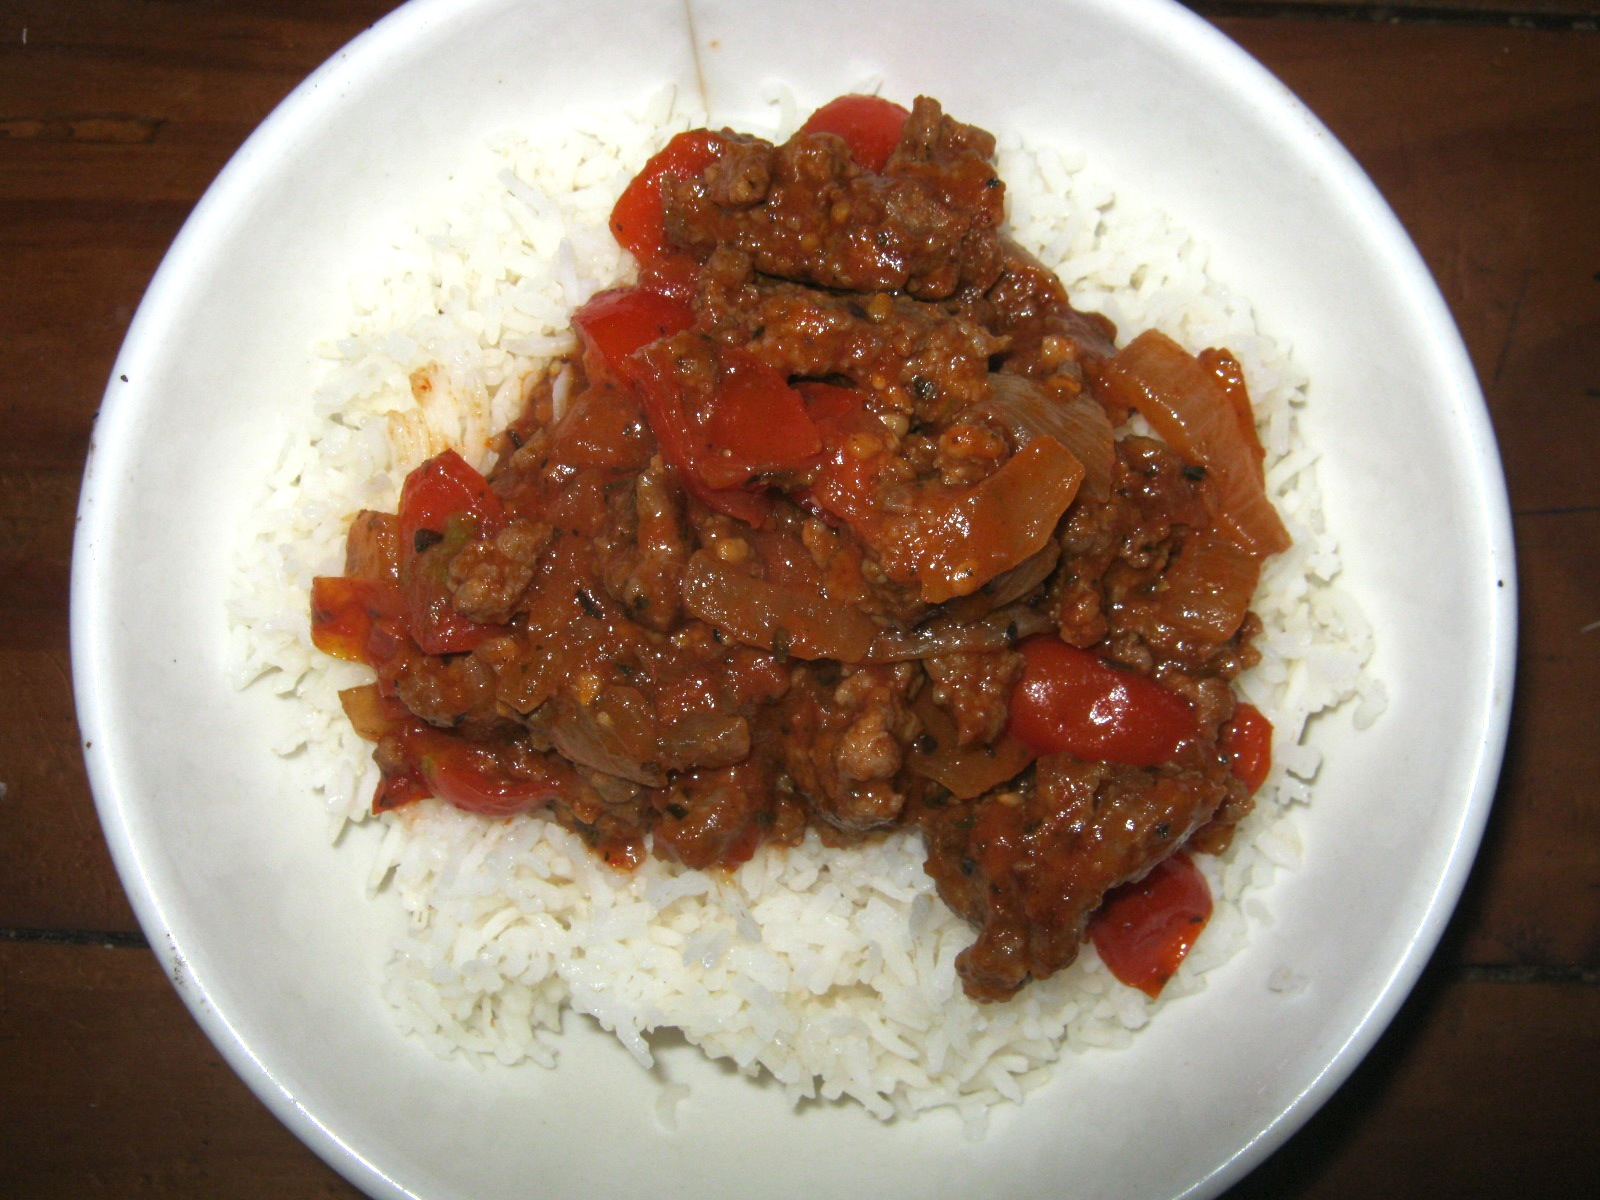 Tasty tomato sauce with mince served on a bed of rice